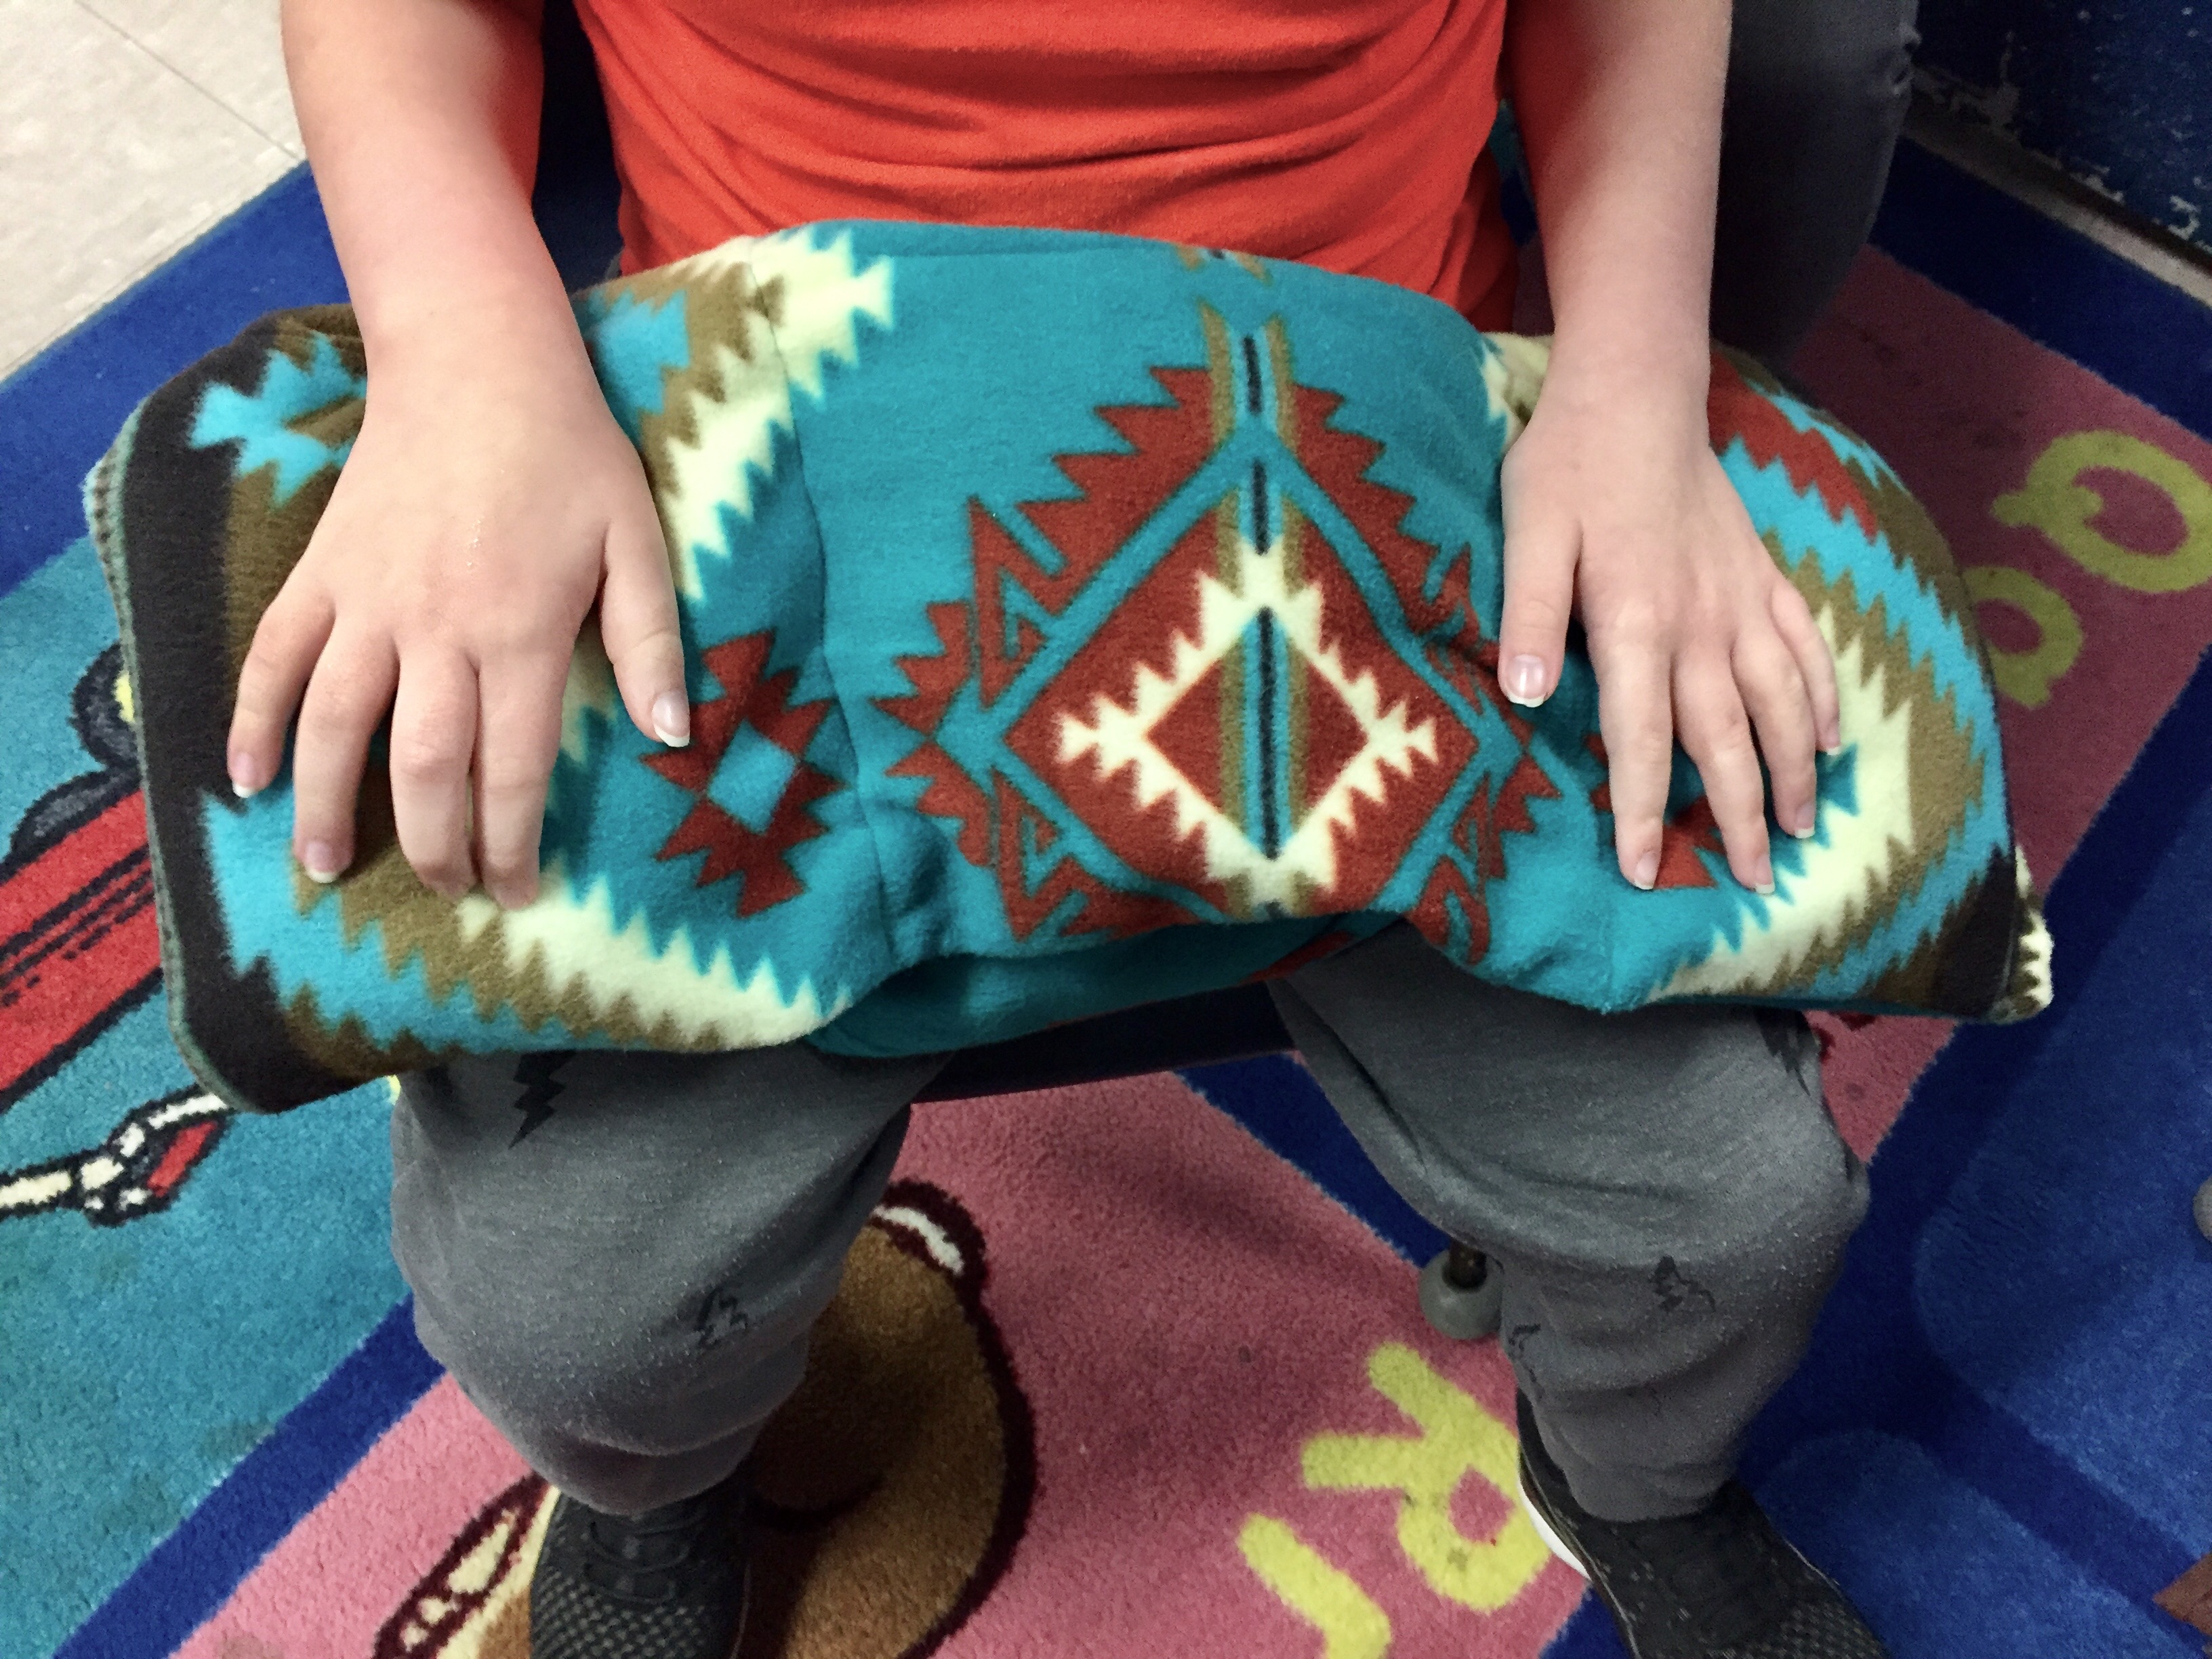 Music therapy, DIY weighted lap pads